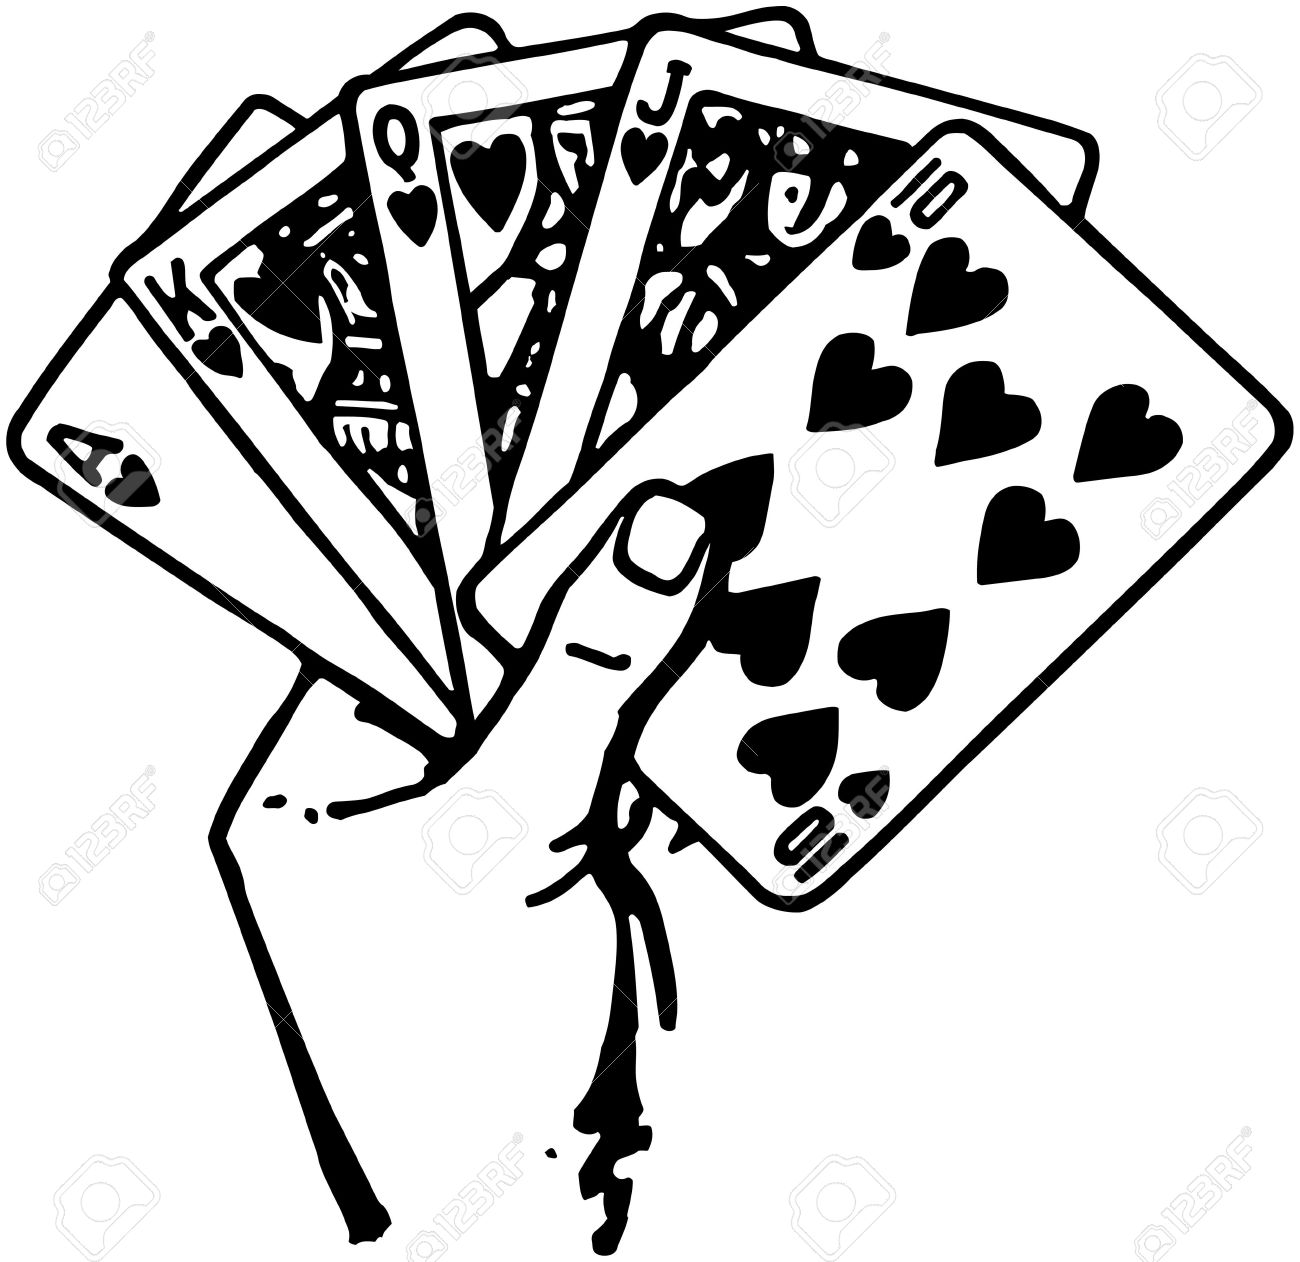 Image result for hand of cards